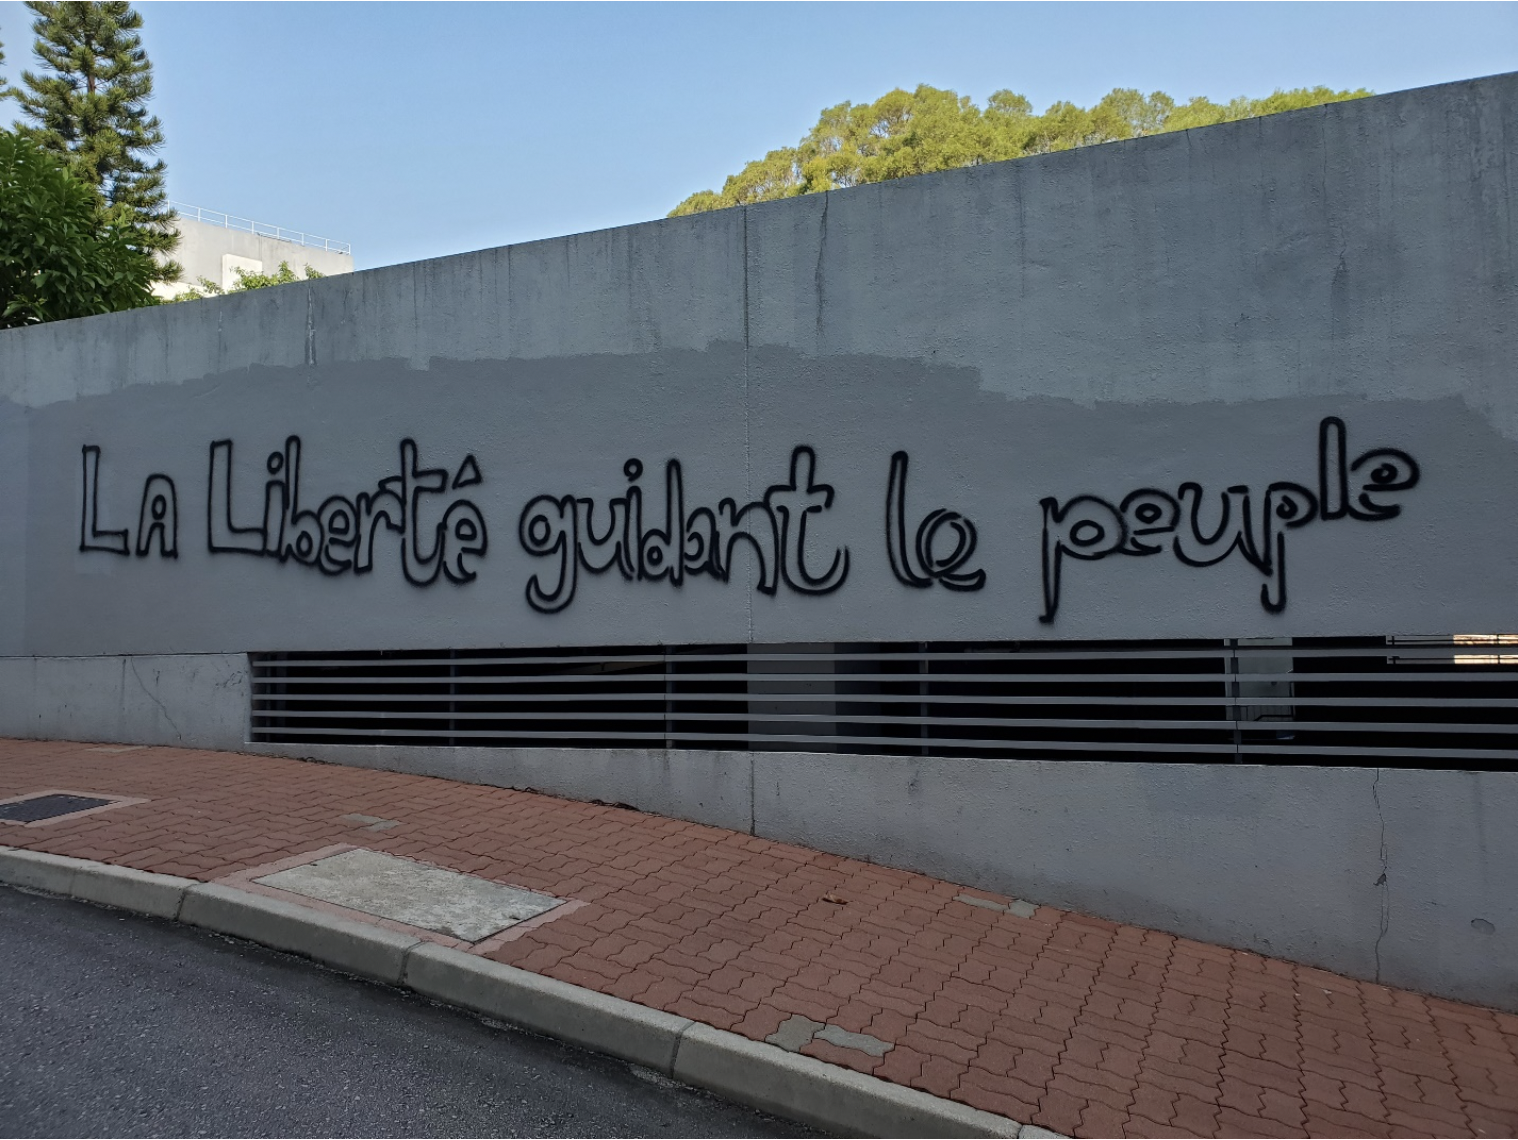 Graffiti on a wall written in French.